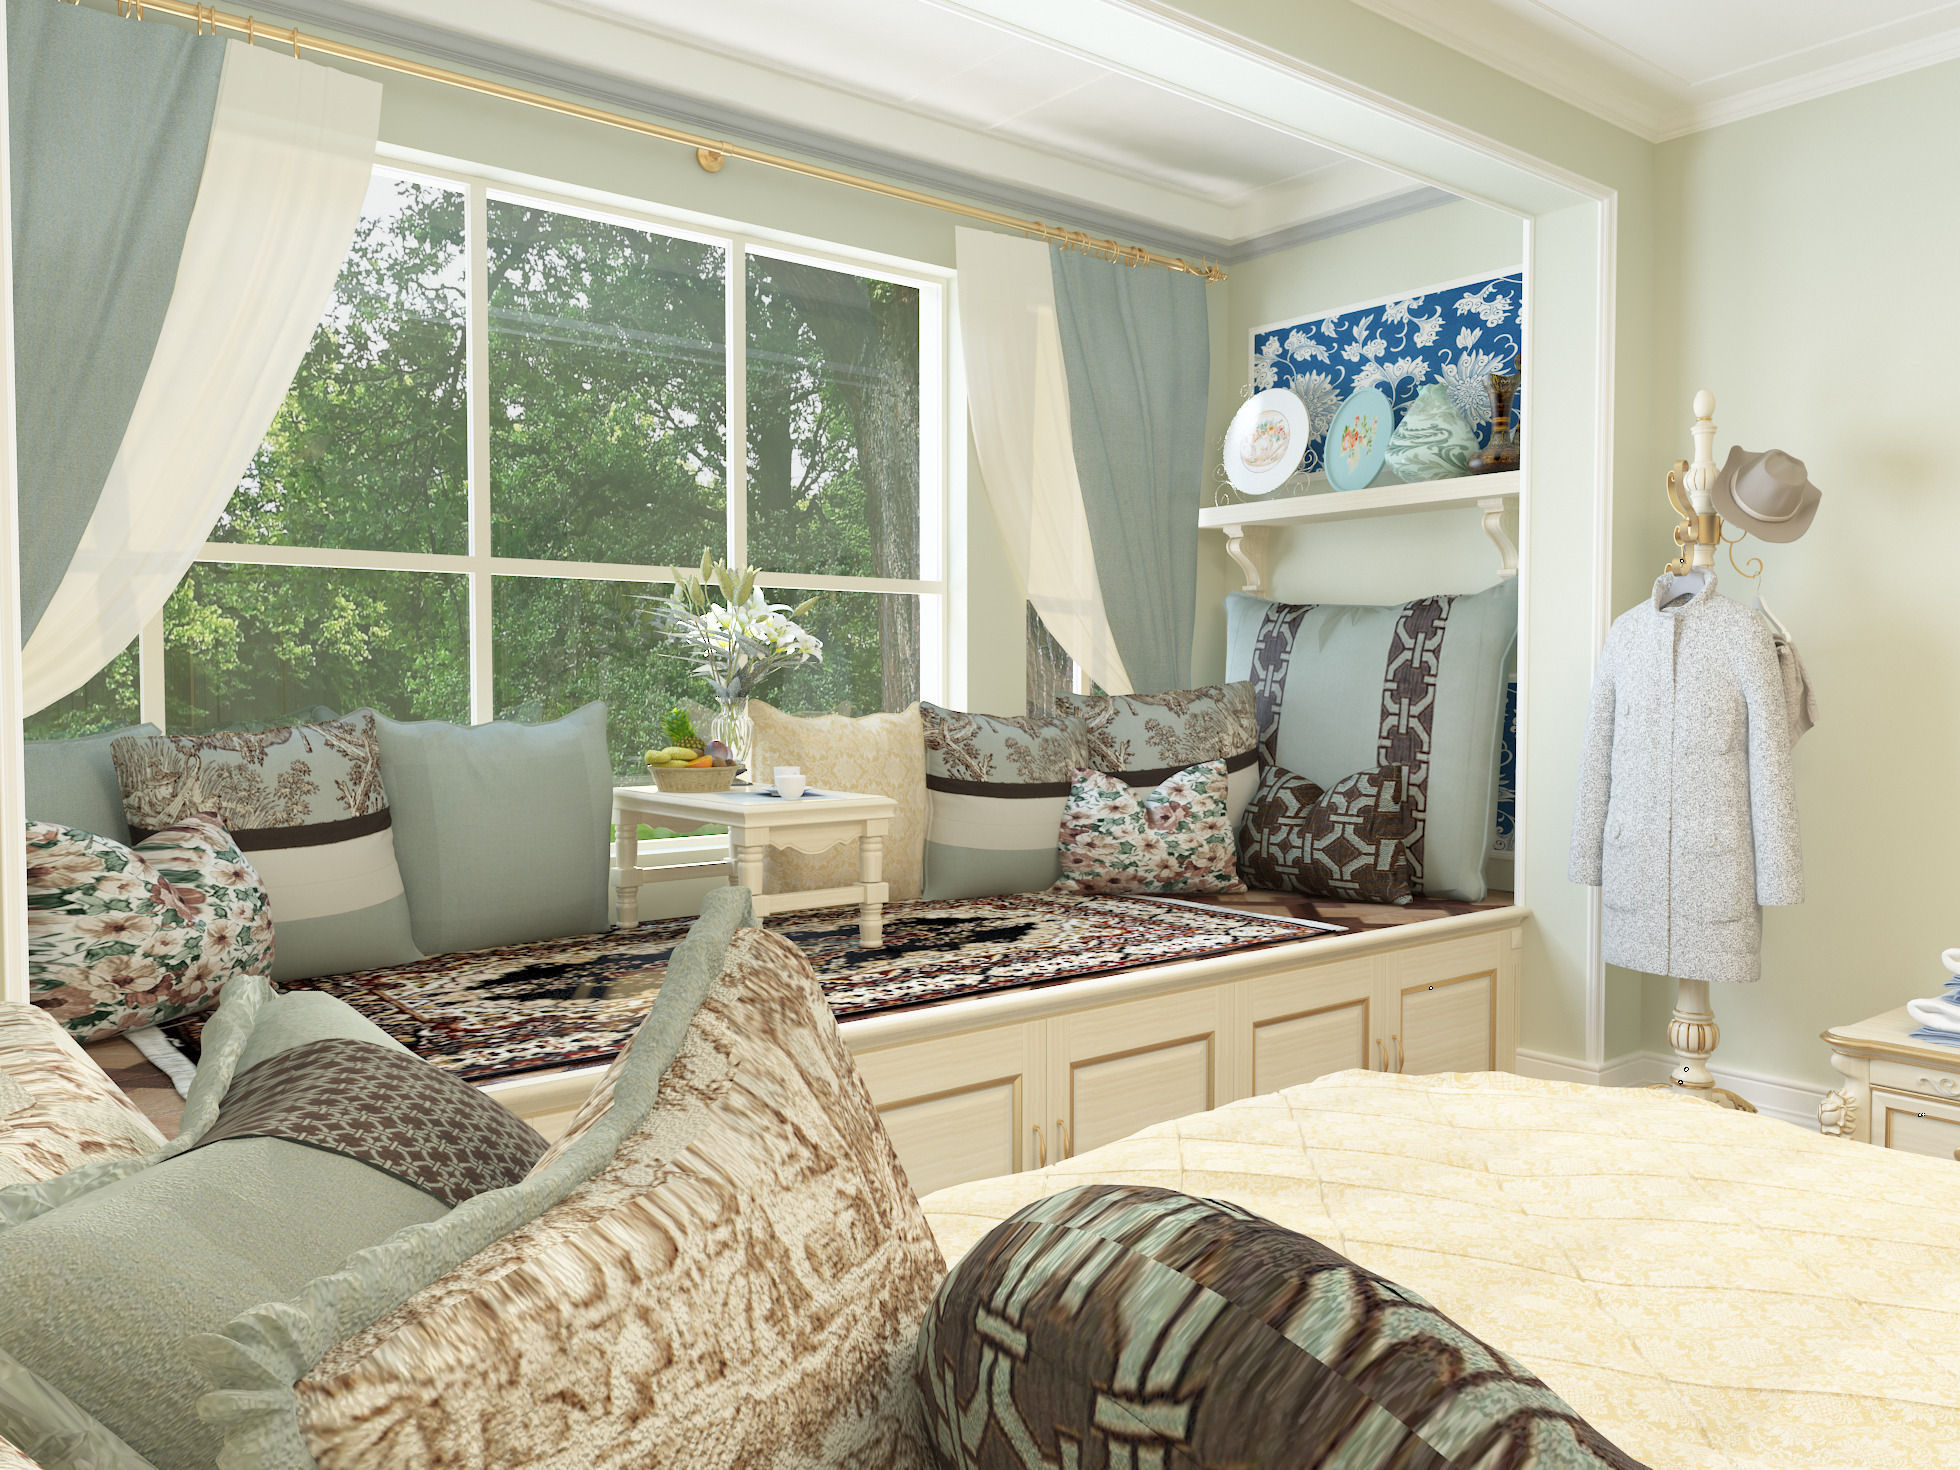 Large Bedroom New Classicism Style With Cloakroom Large Bedroom 3d Model Max